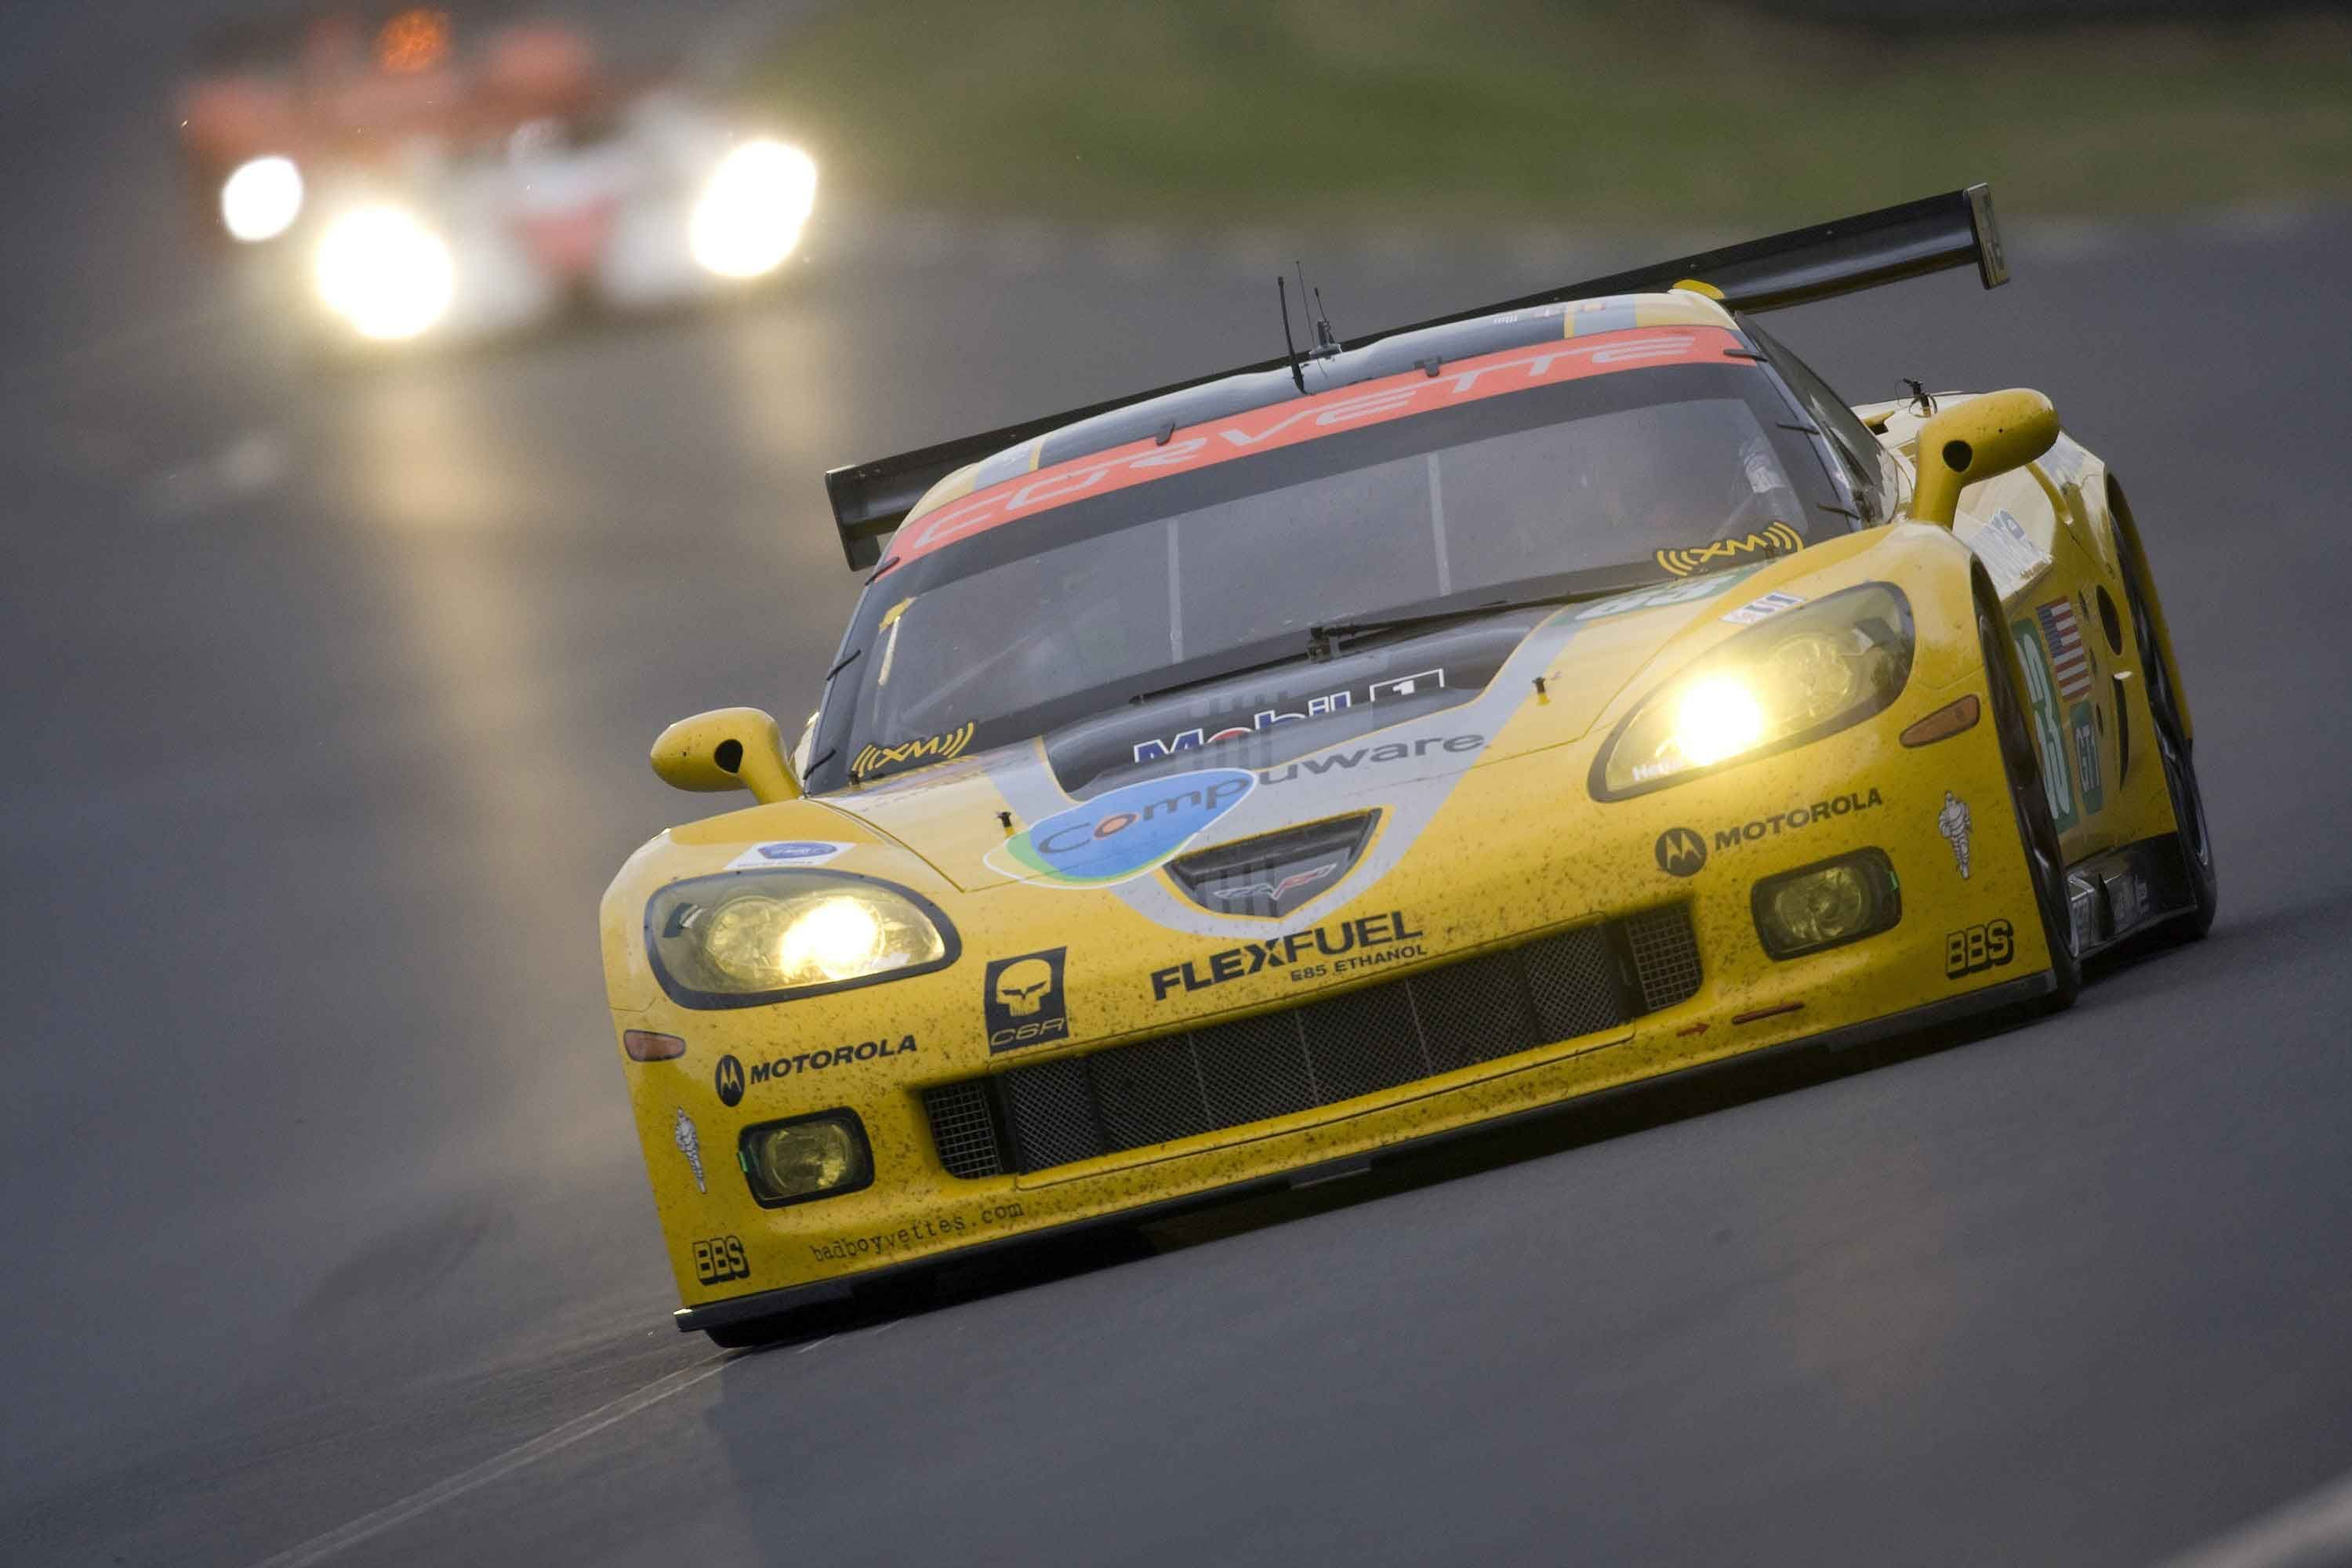 Corvette racing at midpoint HD Wallpaper